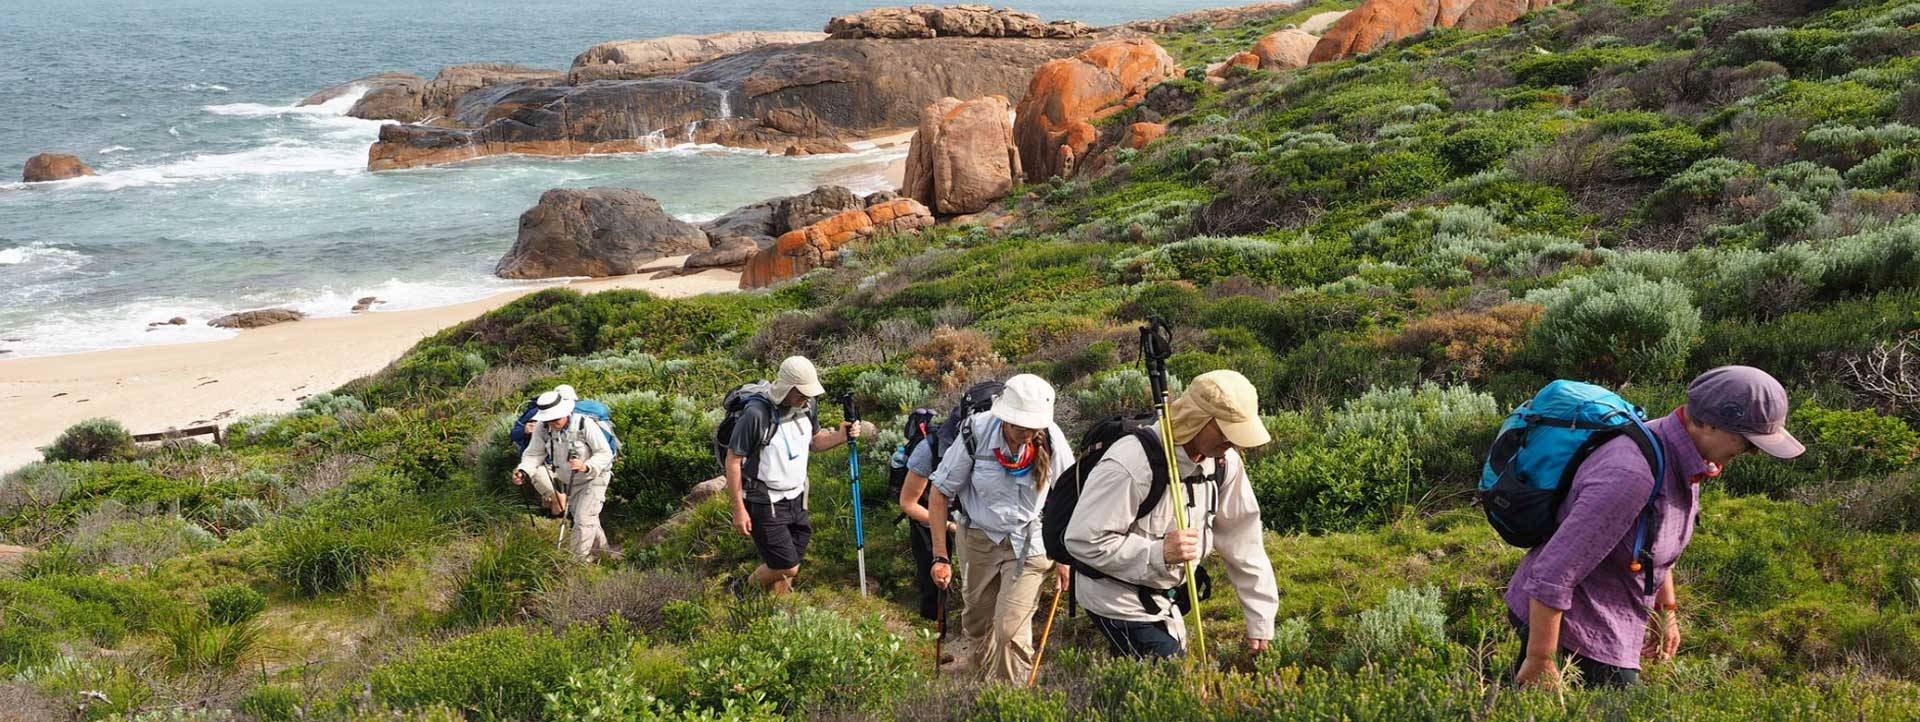 CAPE-TO-CAPE-walking-tours-5-day-people-coast